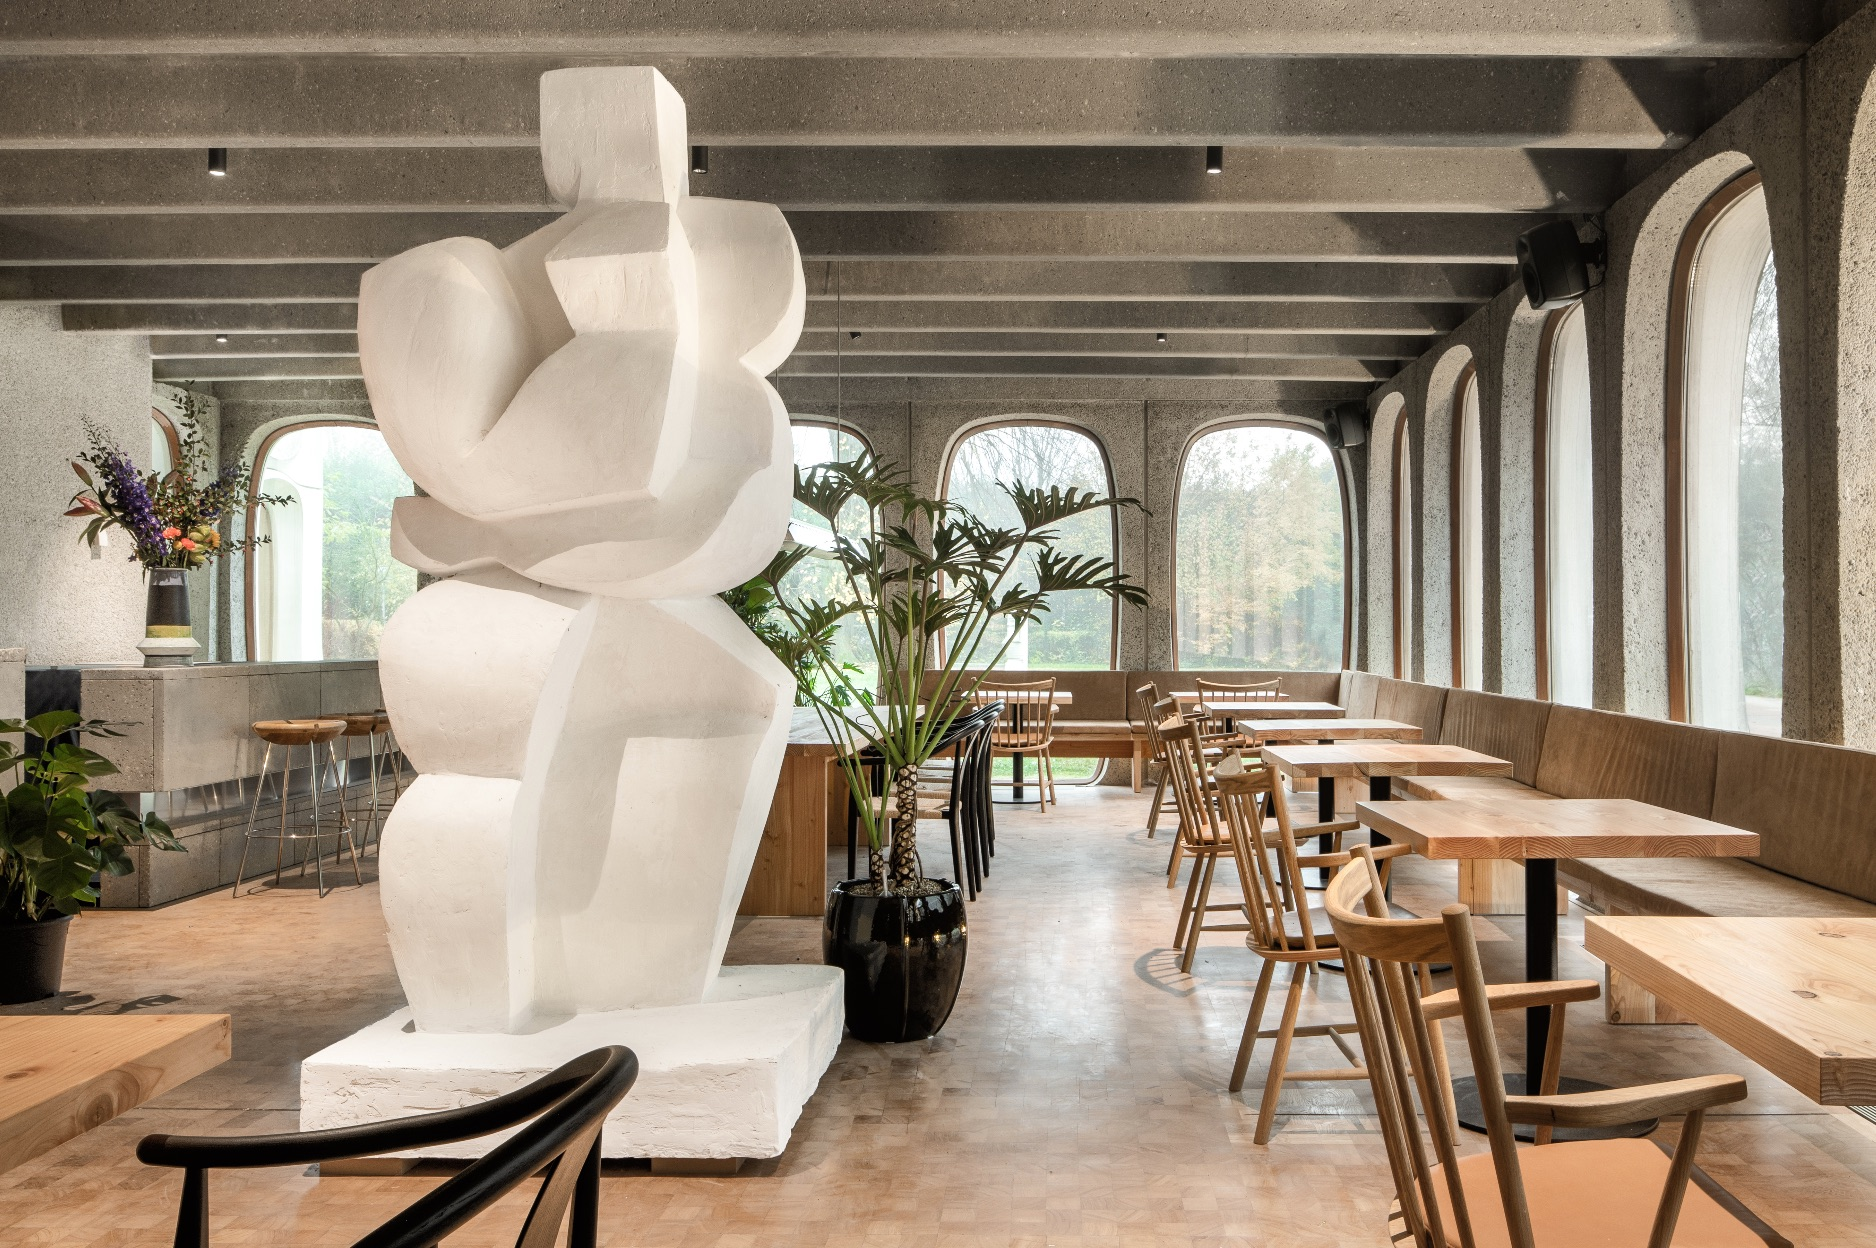 Chairs and tables, at Midori hub Boitsfort, place to work or eat lunch at Fosbury and sons Boitsfort